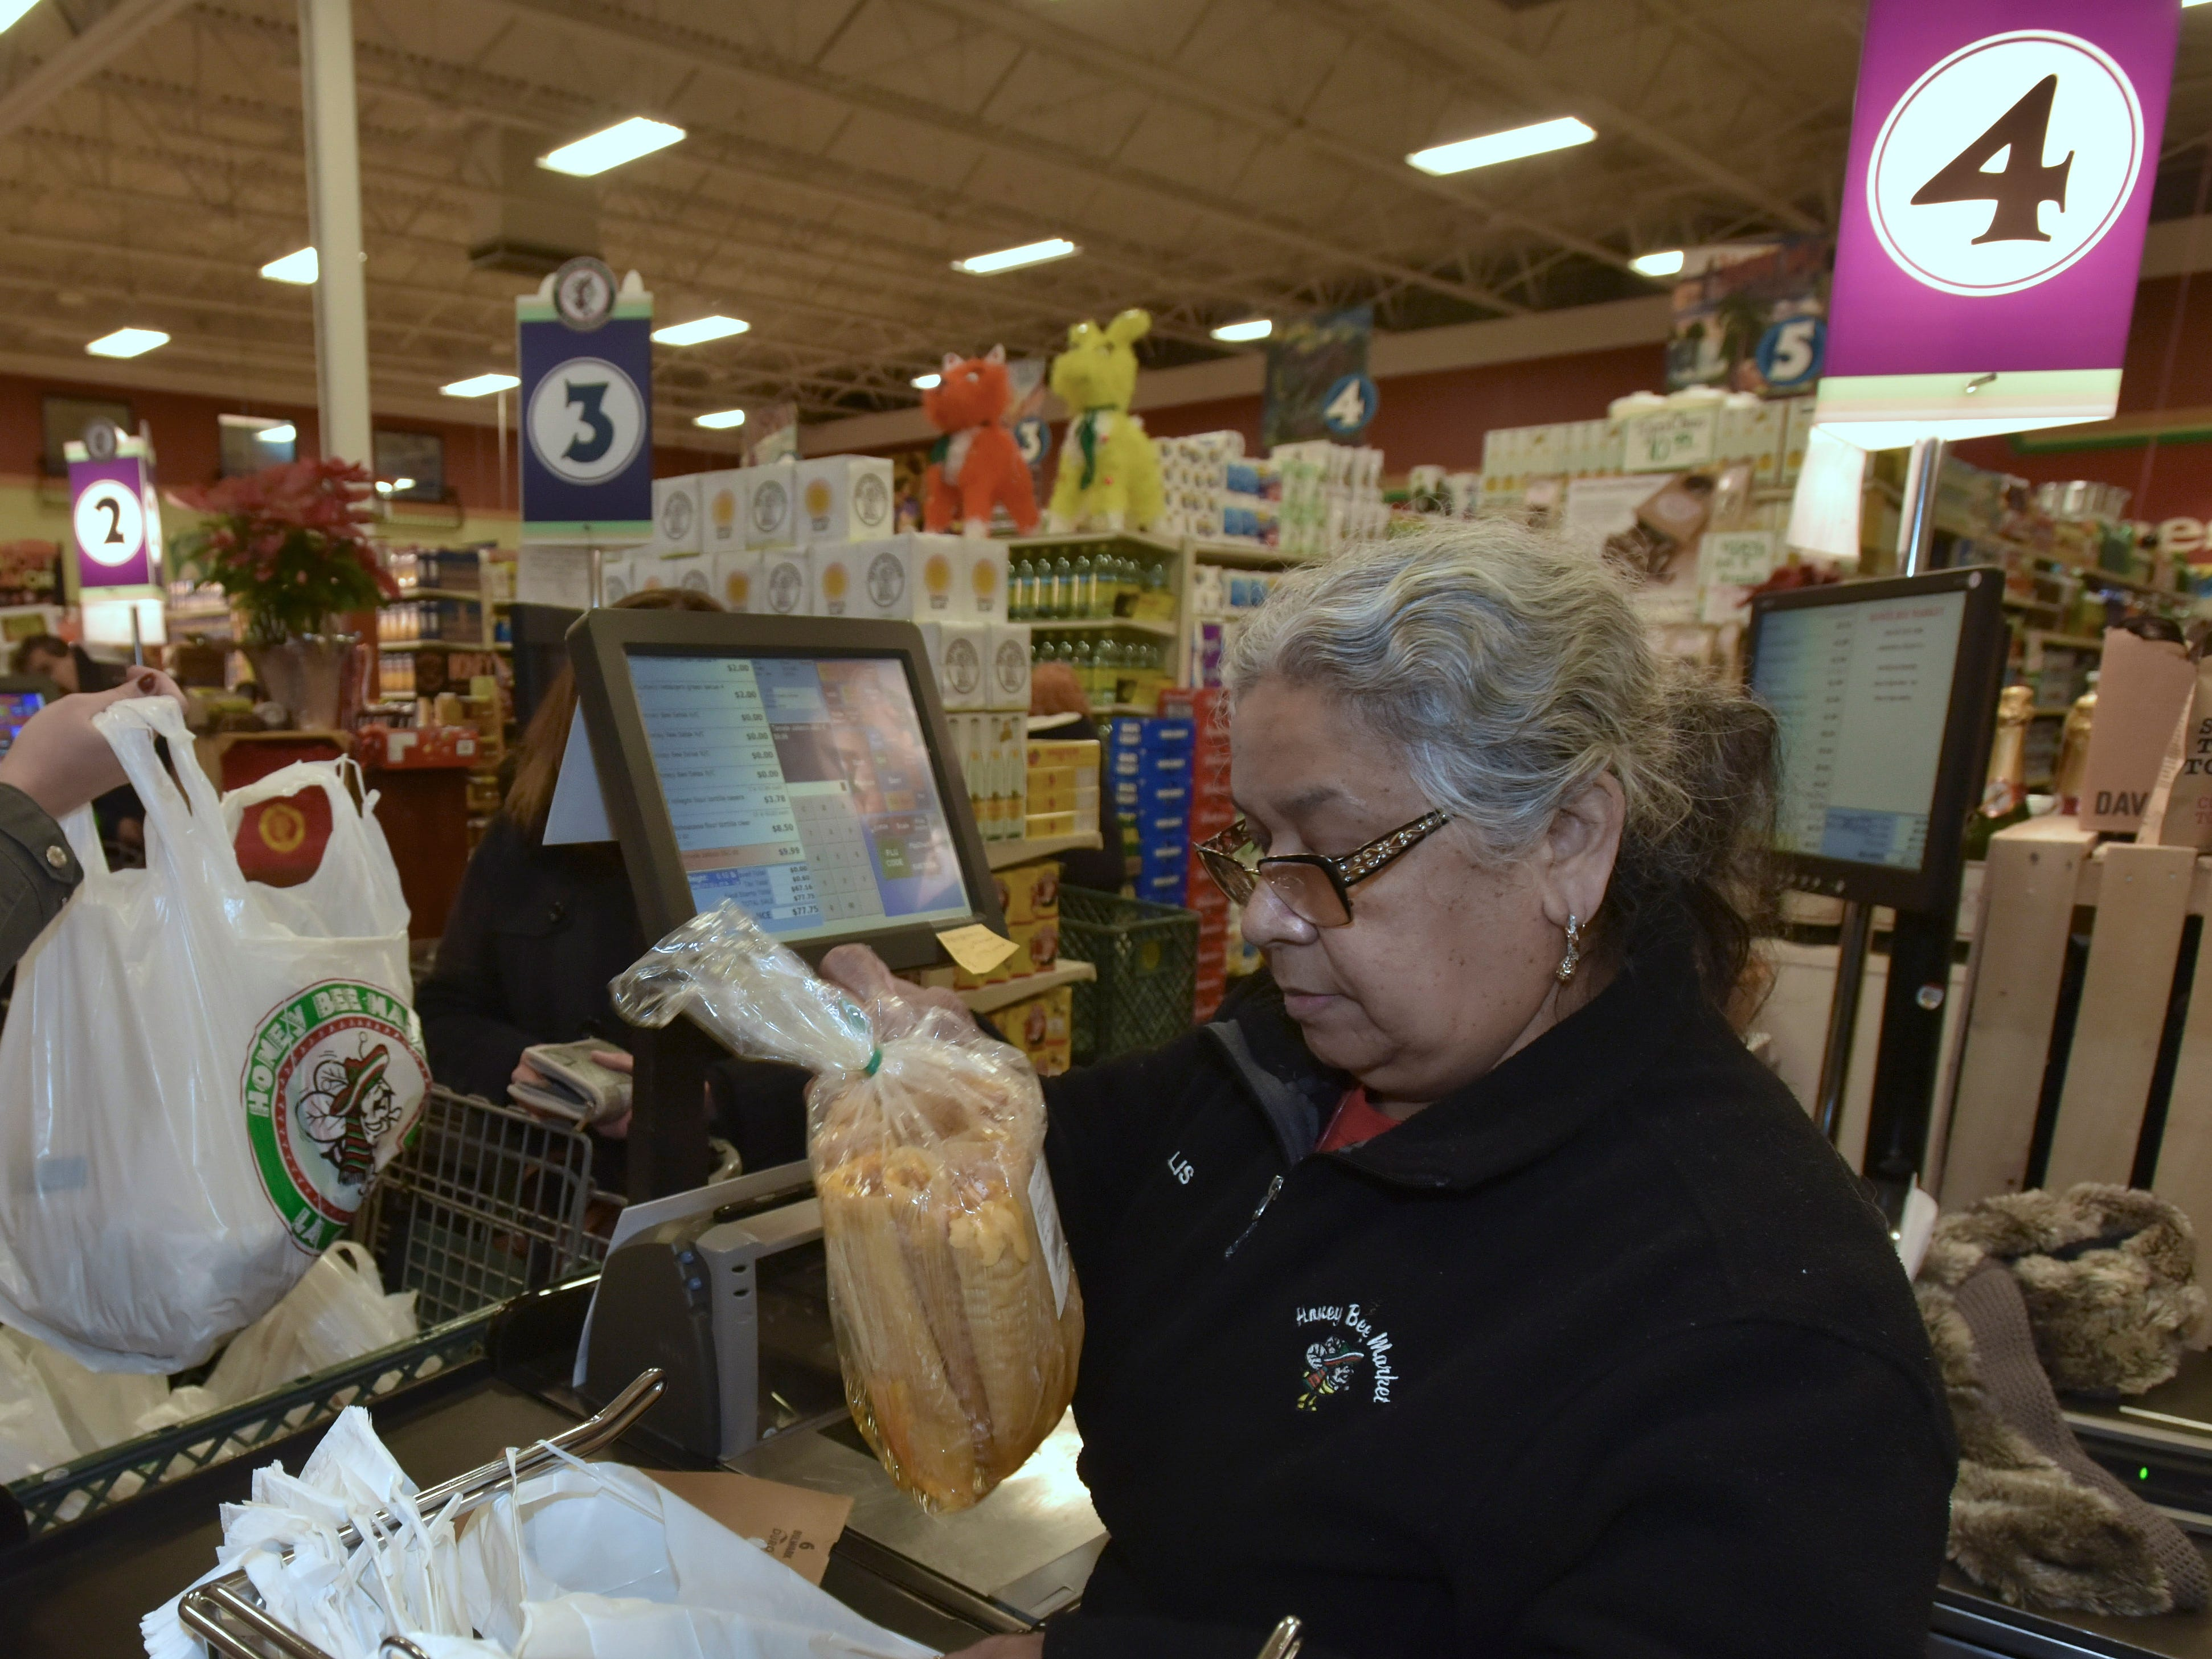 Beth Napier, left, of Trenton, puts grociers in her shopping cart as cashier Phyllis Zuniga, right, of Detroit, double bags a dozen fresh tamales.